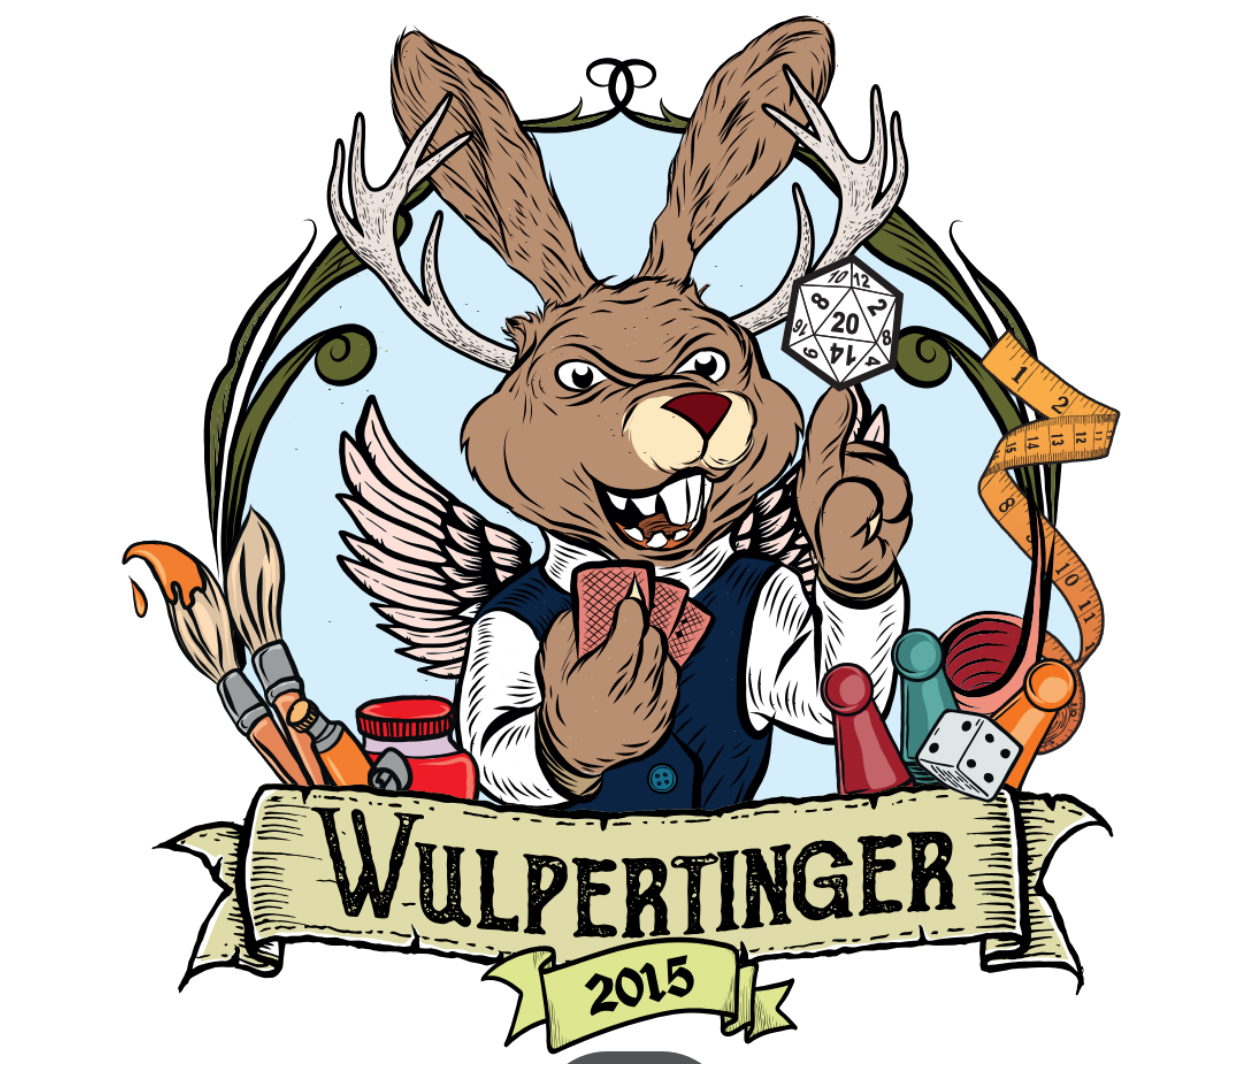 Wulpertinger Blog